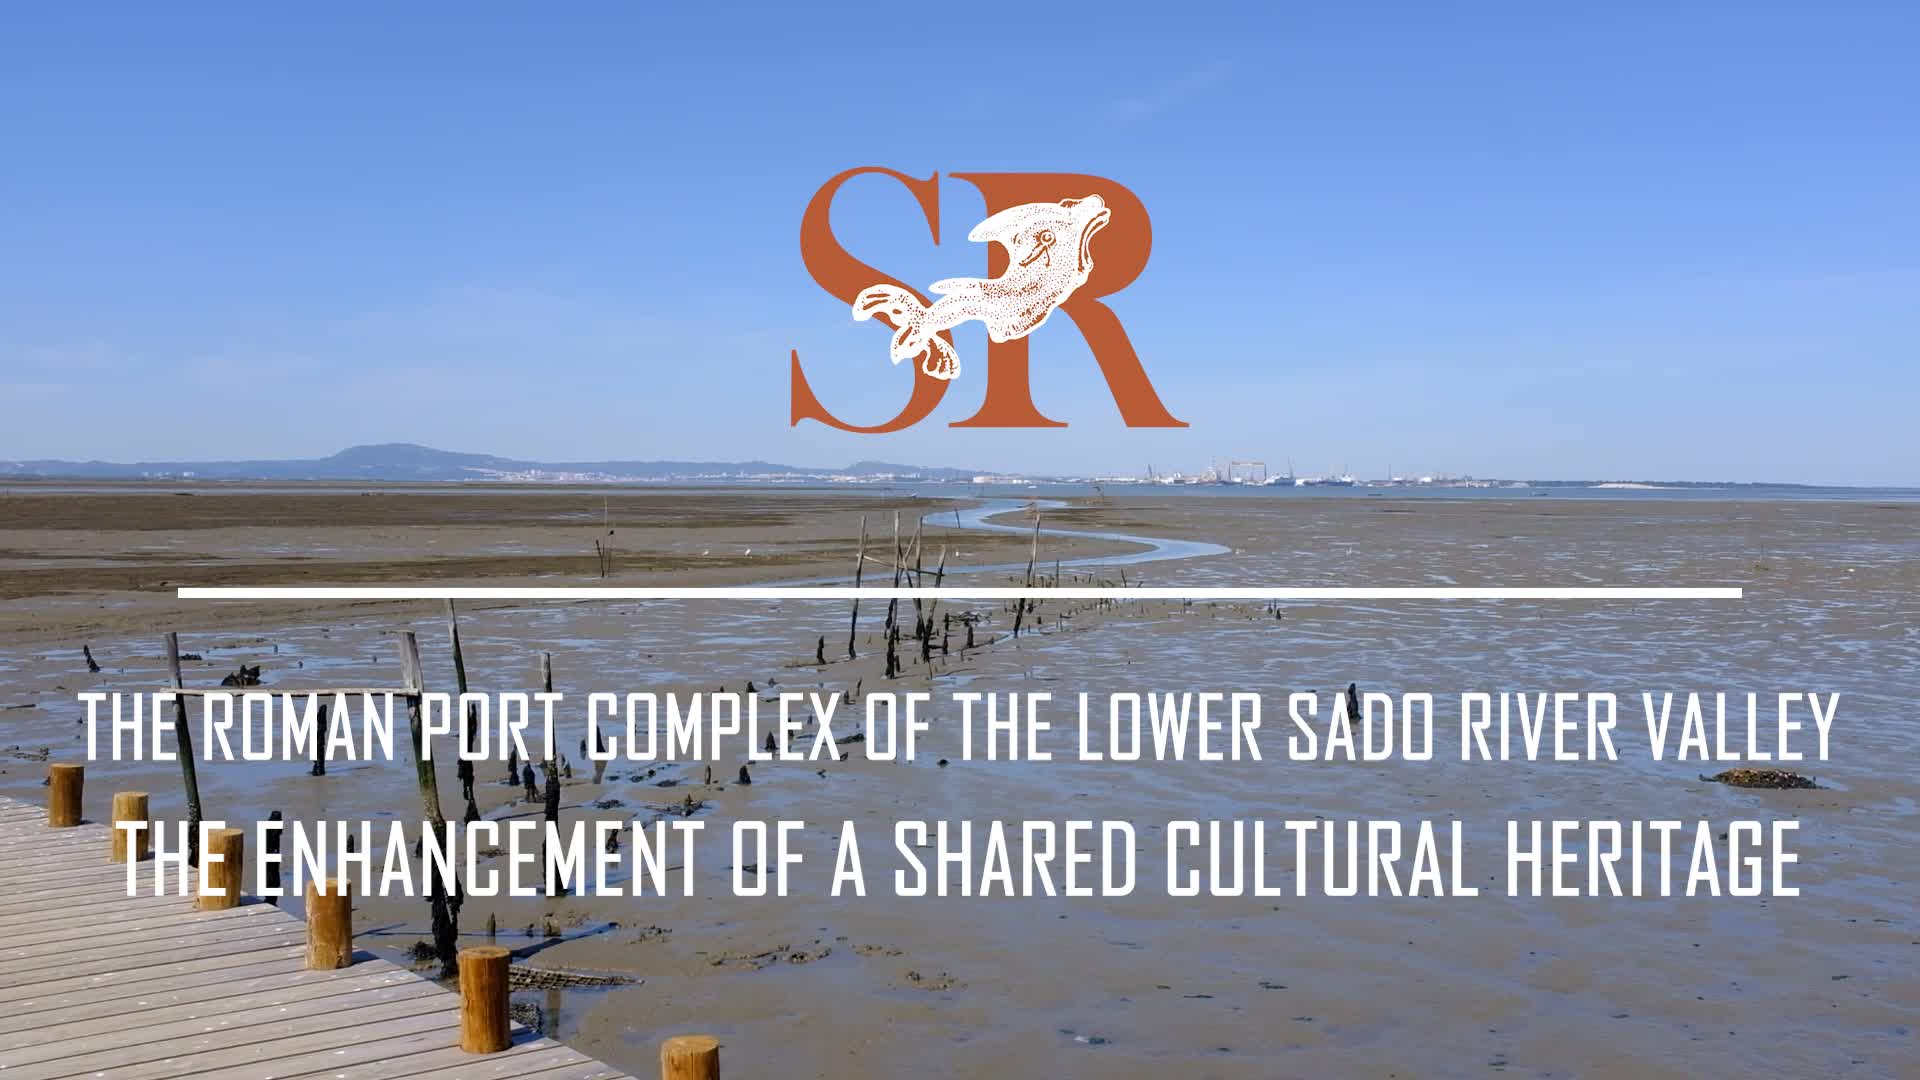 The Roman Port Complex of the Lower Sado River Valley. The Enhancement of a Shared Cultural Heritage